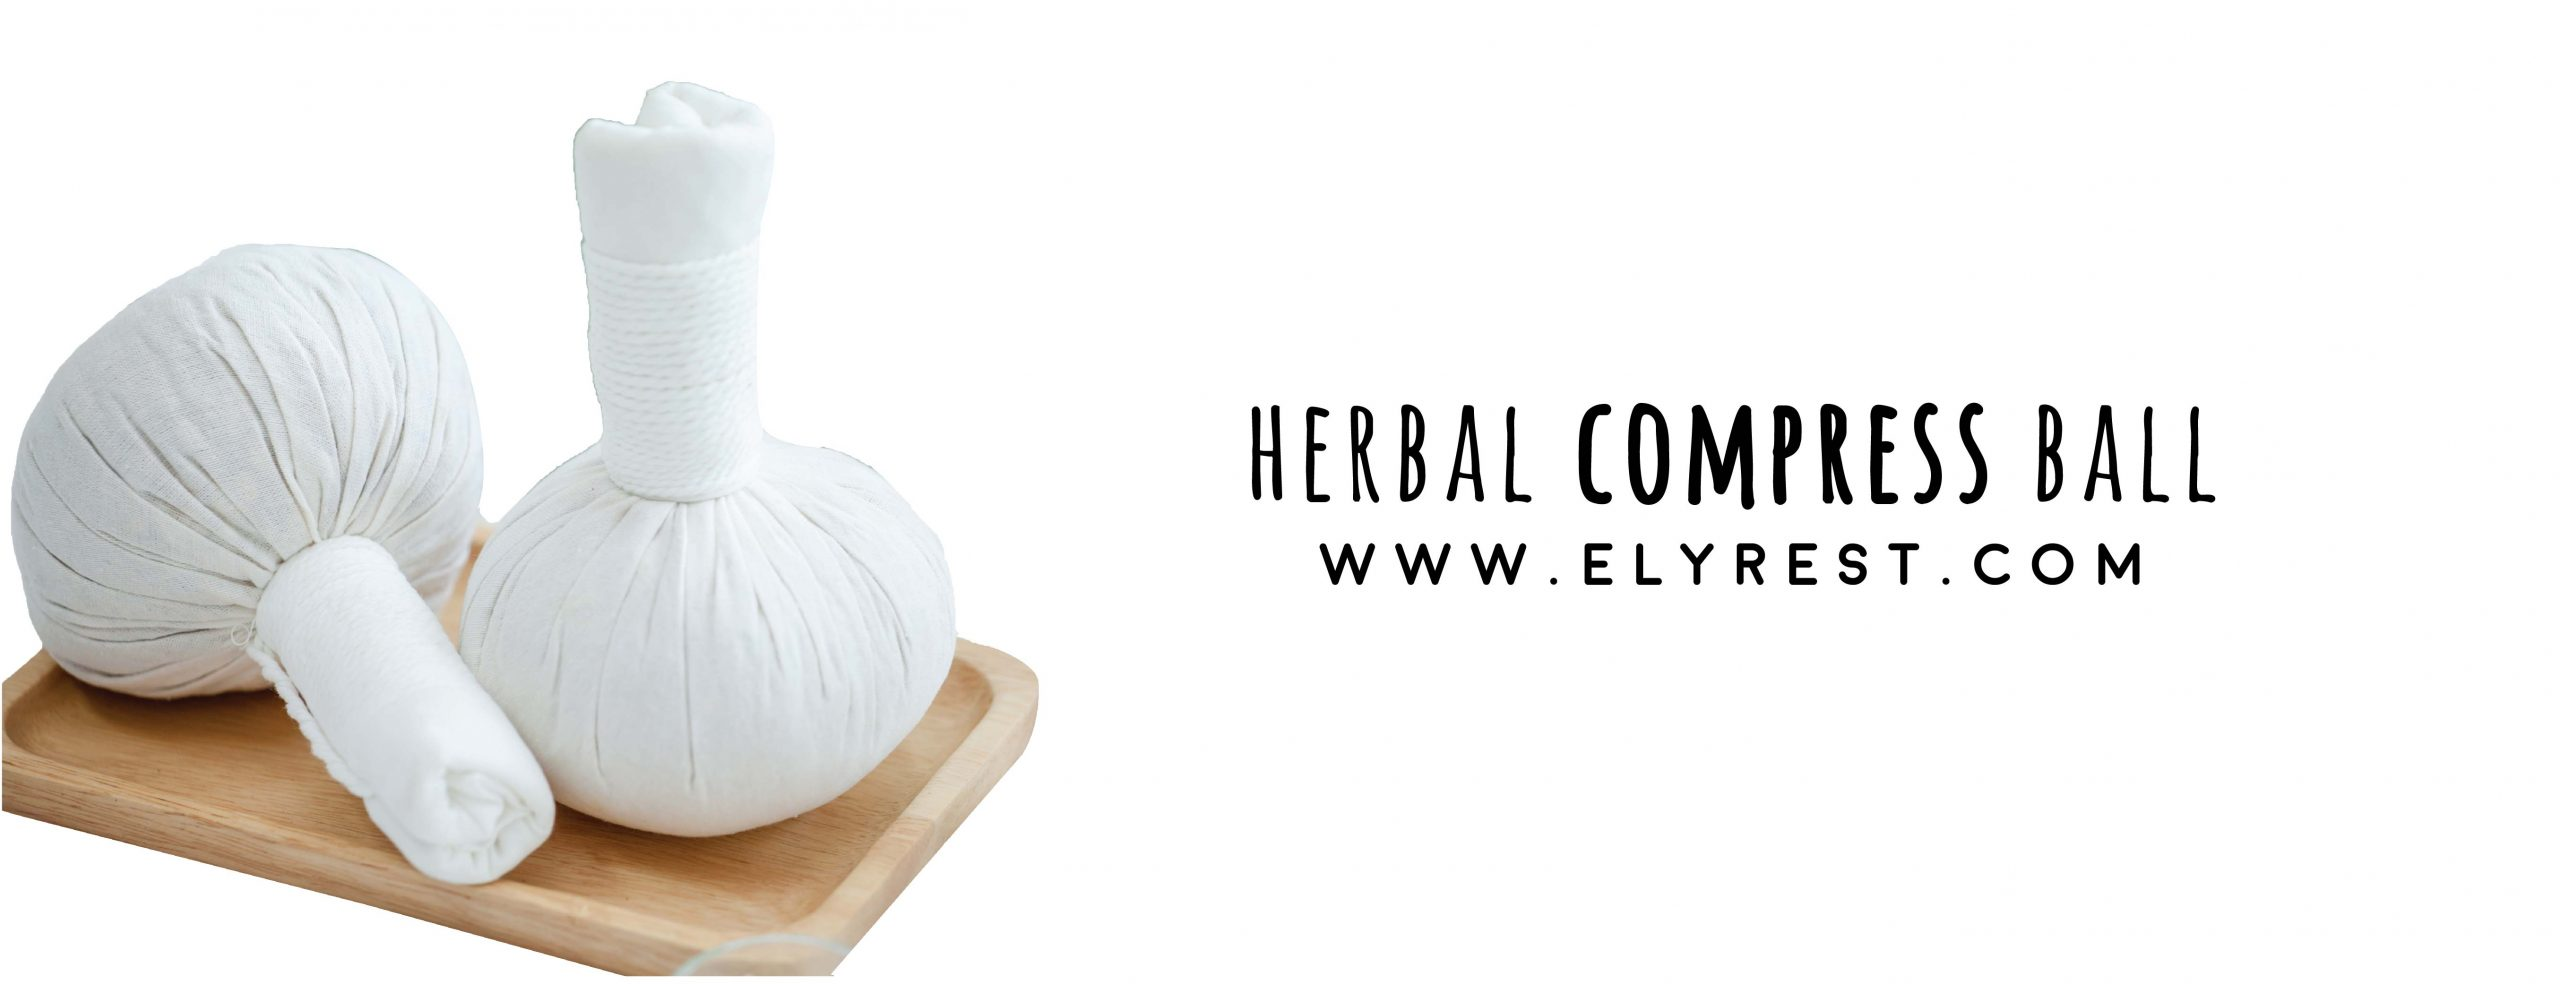 Herbal Compress Ball / Body